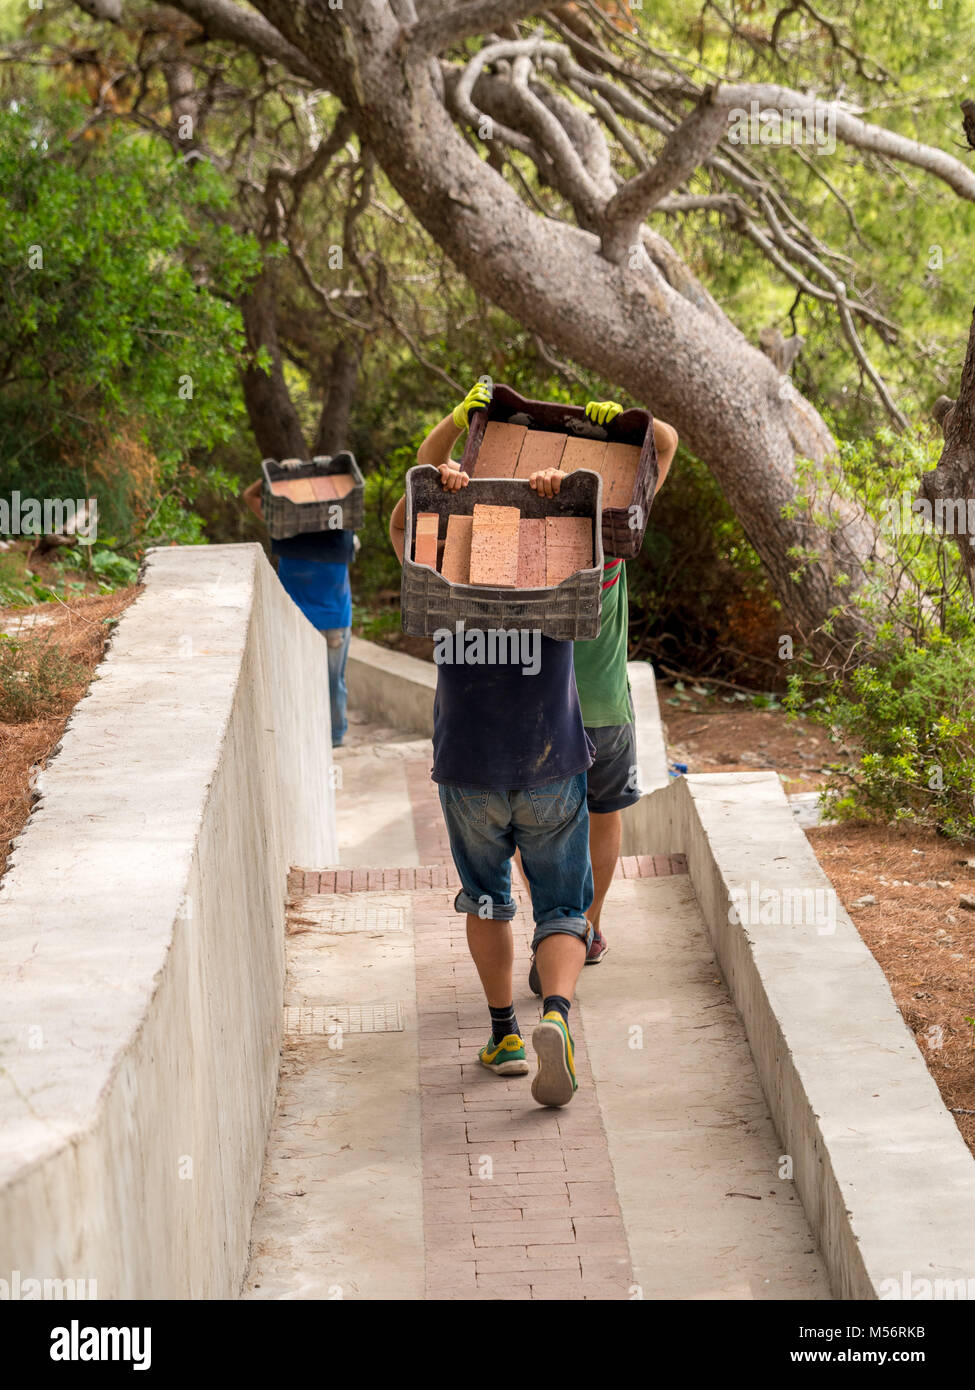 Workers carrying bricks to site by hand on the island of Capri, Italy. - Stock Image